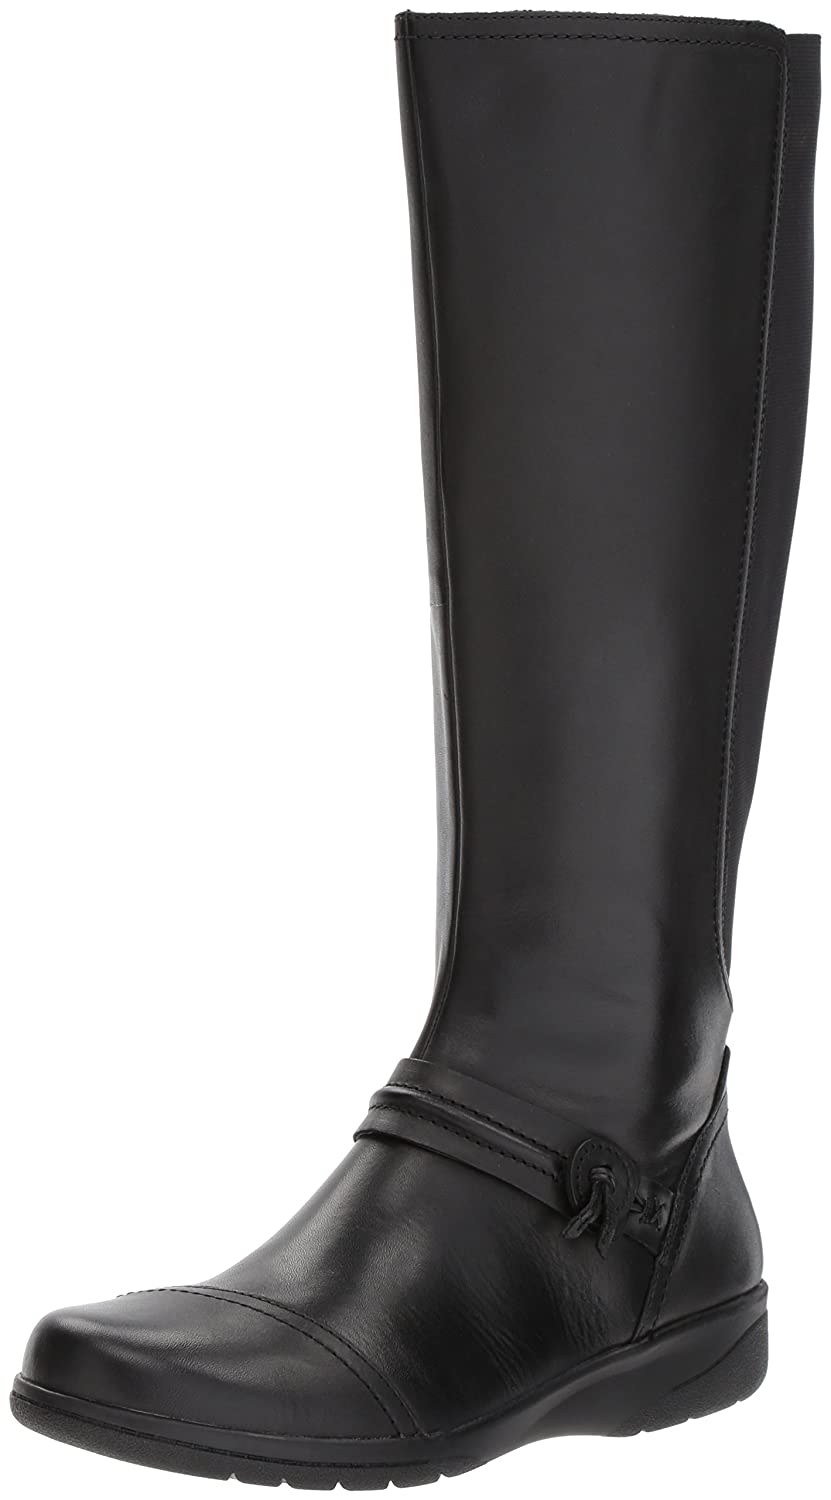 CLARKS Women's Cheyn Whisk Riding Boot B01MSXHQ5C 8 B(M) US|Black